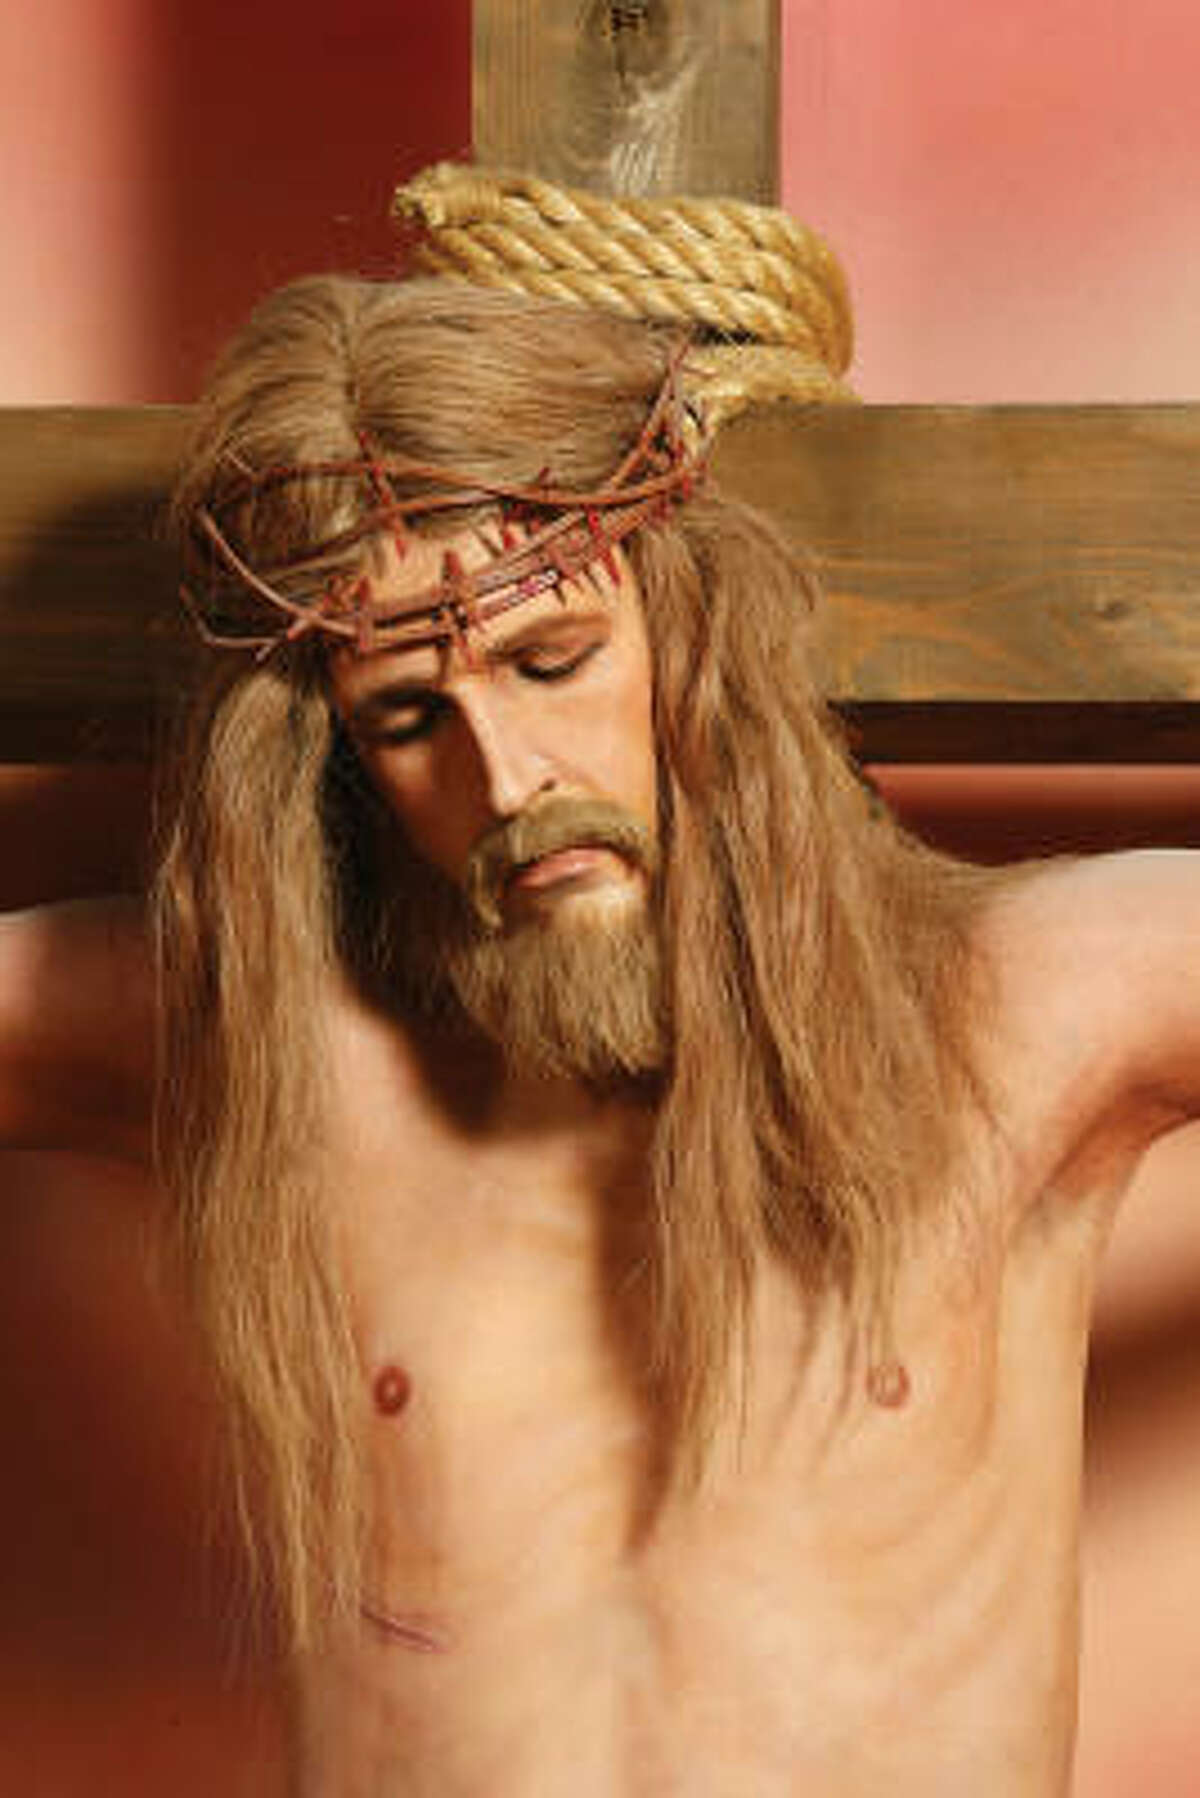 This wax statue of Jesus on the cross will go on the auction block May 1. The Hollywood Wax Museum hopes to get at least $2,000 apiece for several wax figures of Jesus. They are included with more than 200 wax figures, including top stars, musicians, athletes, and historical individuals from the Hollywood Wax Museum will be sold by Profiles in History, the world's leading Hollywood memorabilia dealer.